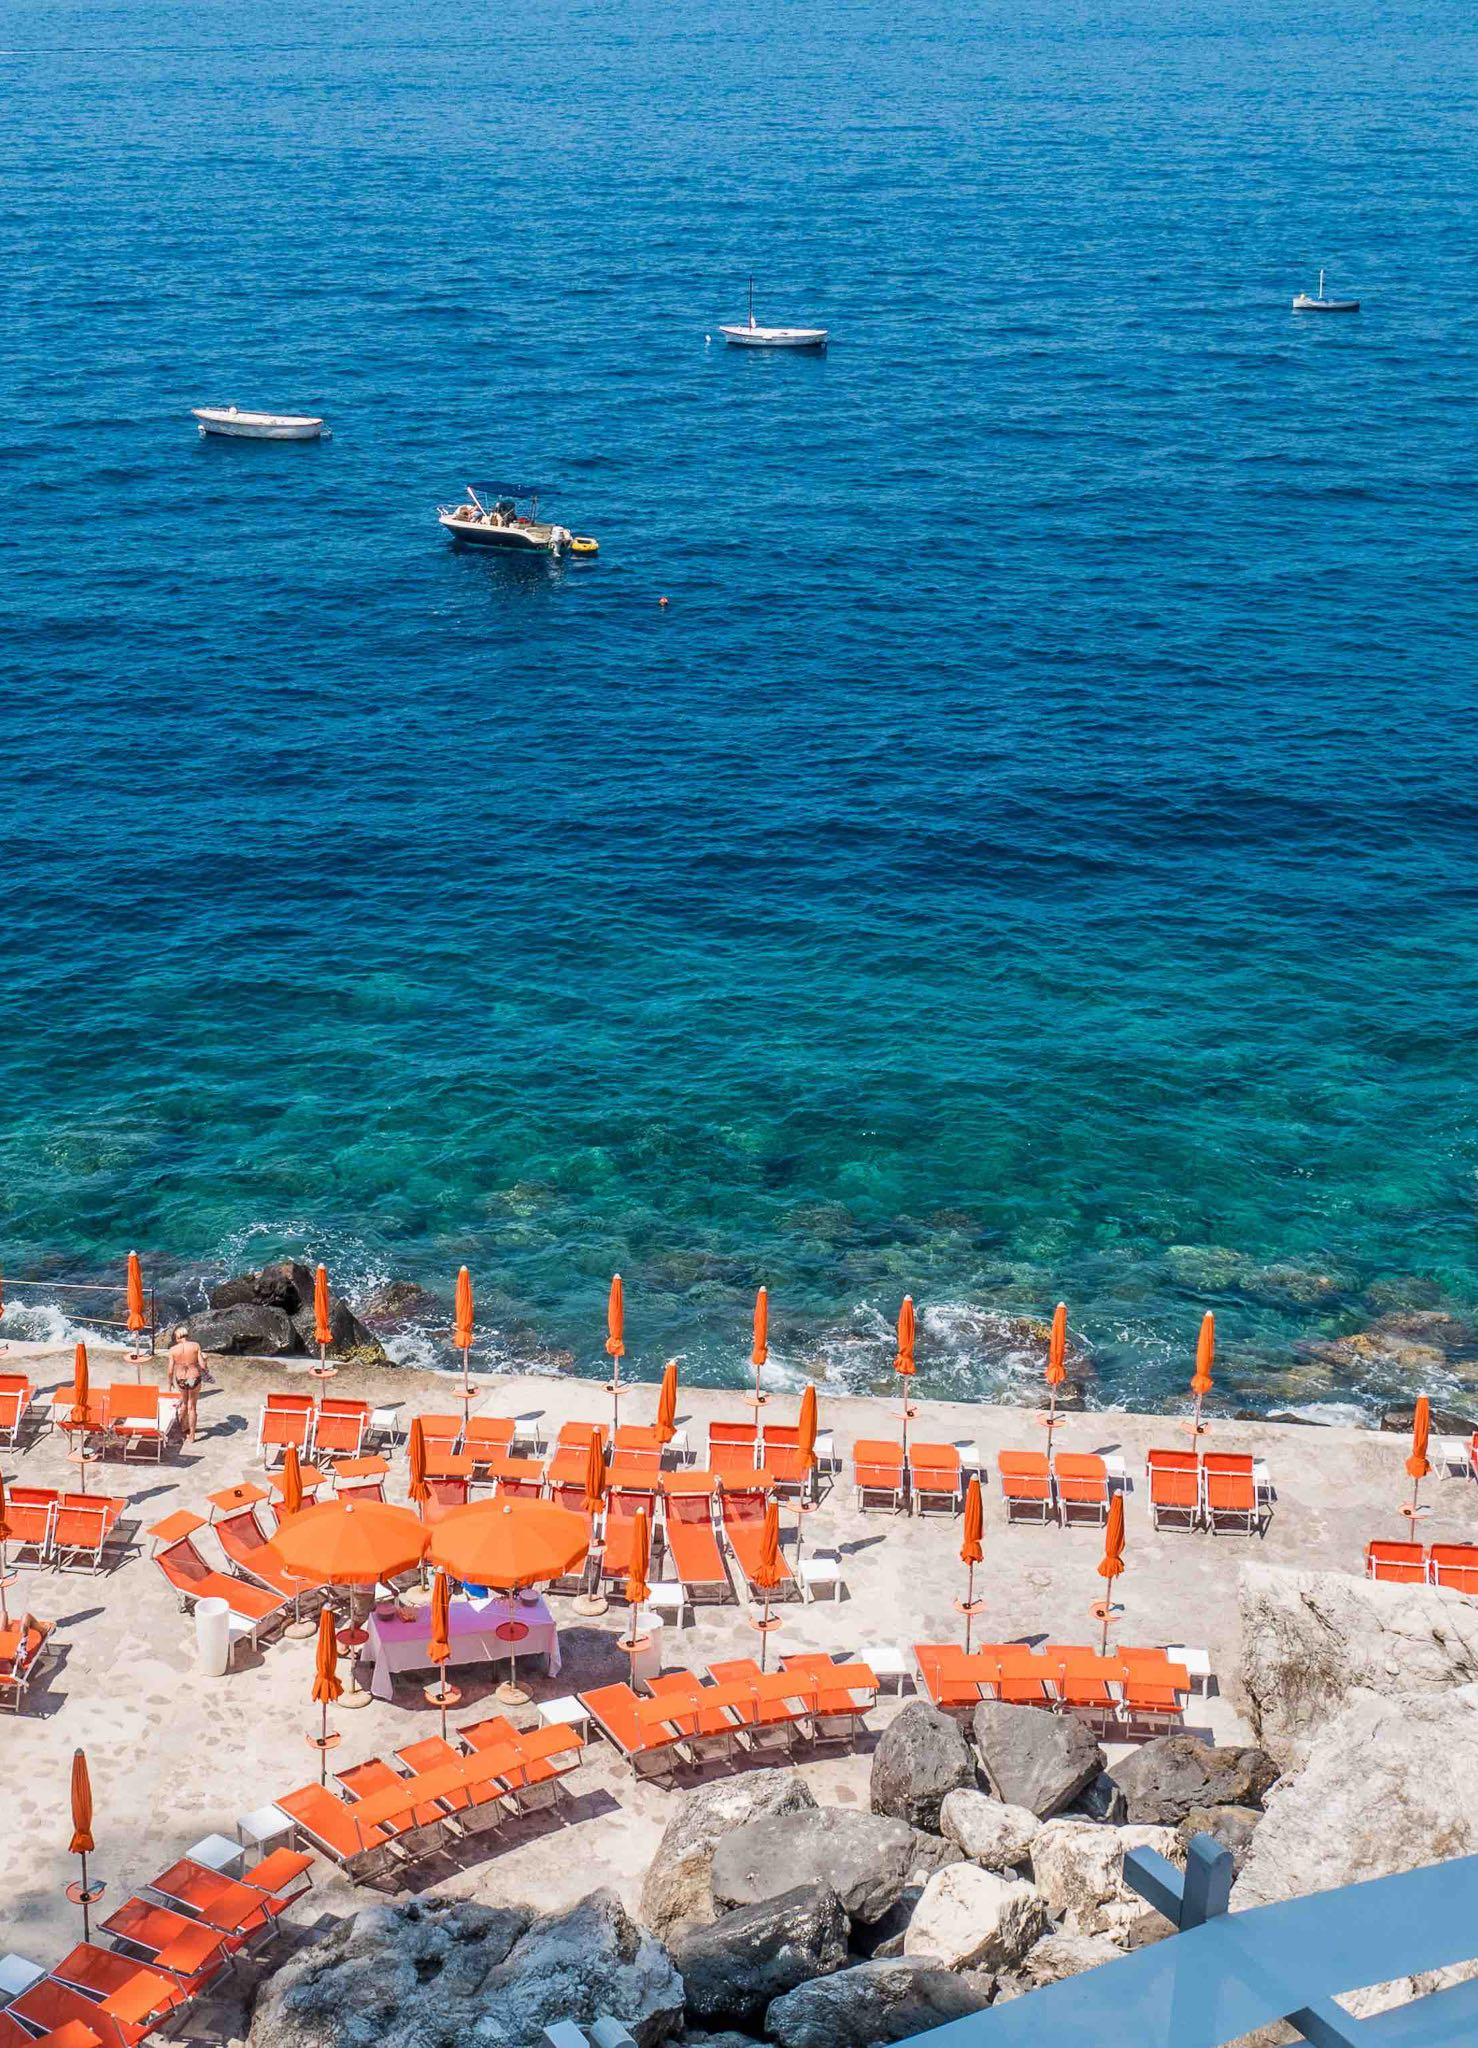 Beach with sunbeds at Praiano cliffs in the Amalfi coast, Italy.